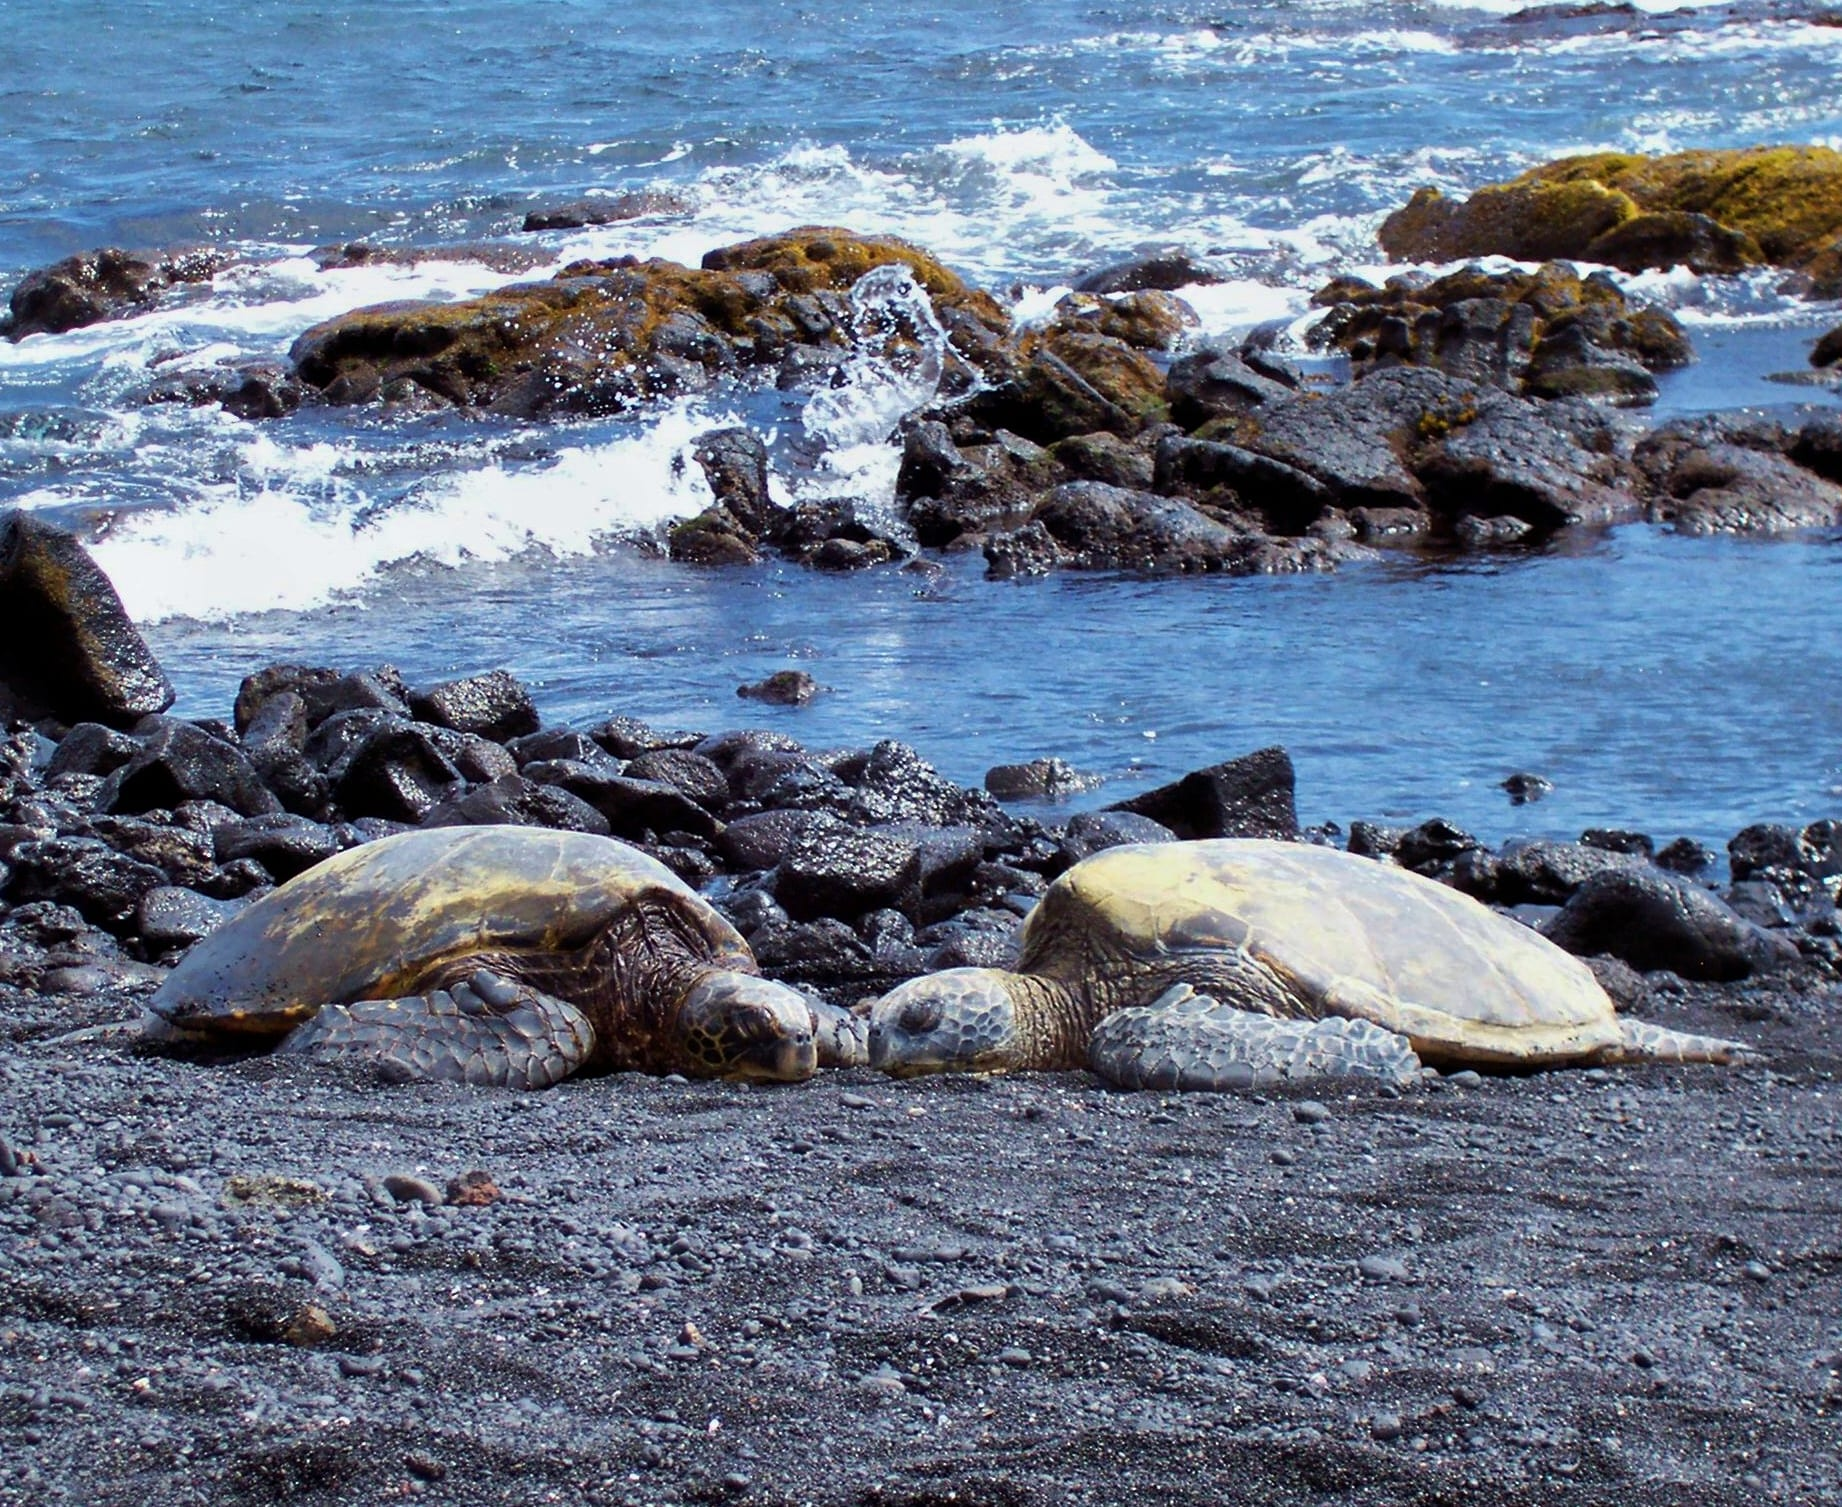 Sea Turtles at Punalu'u